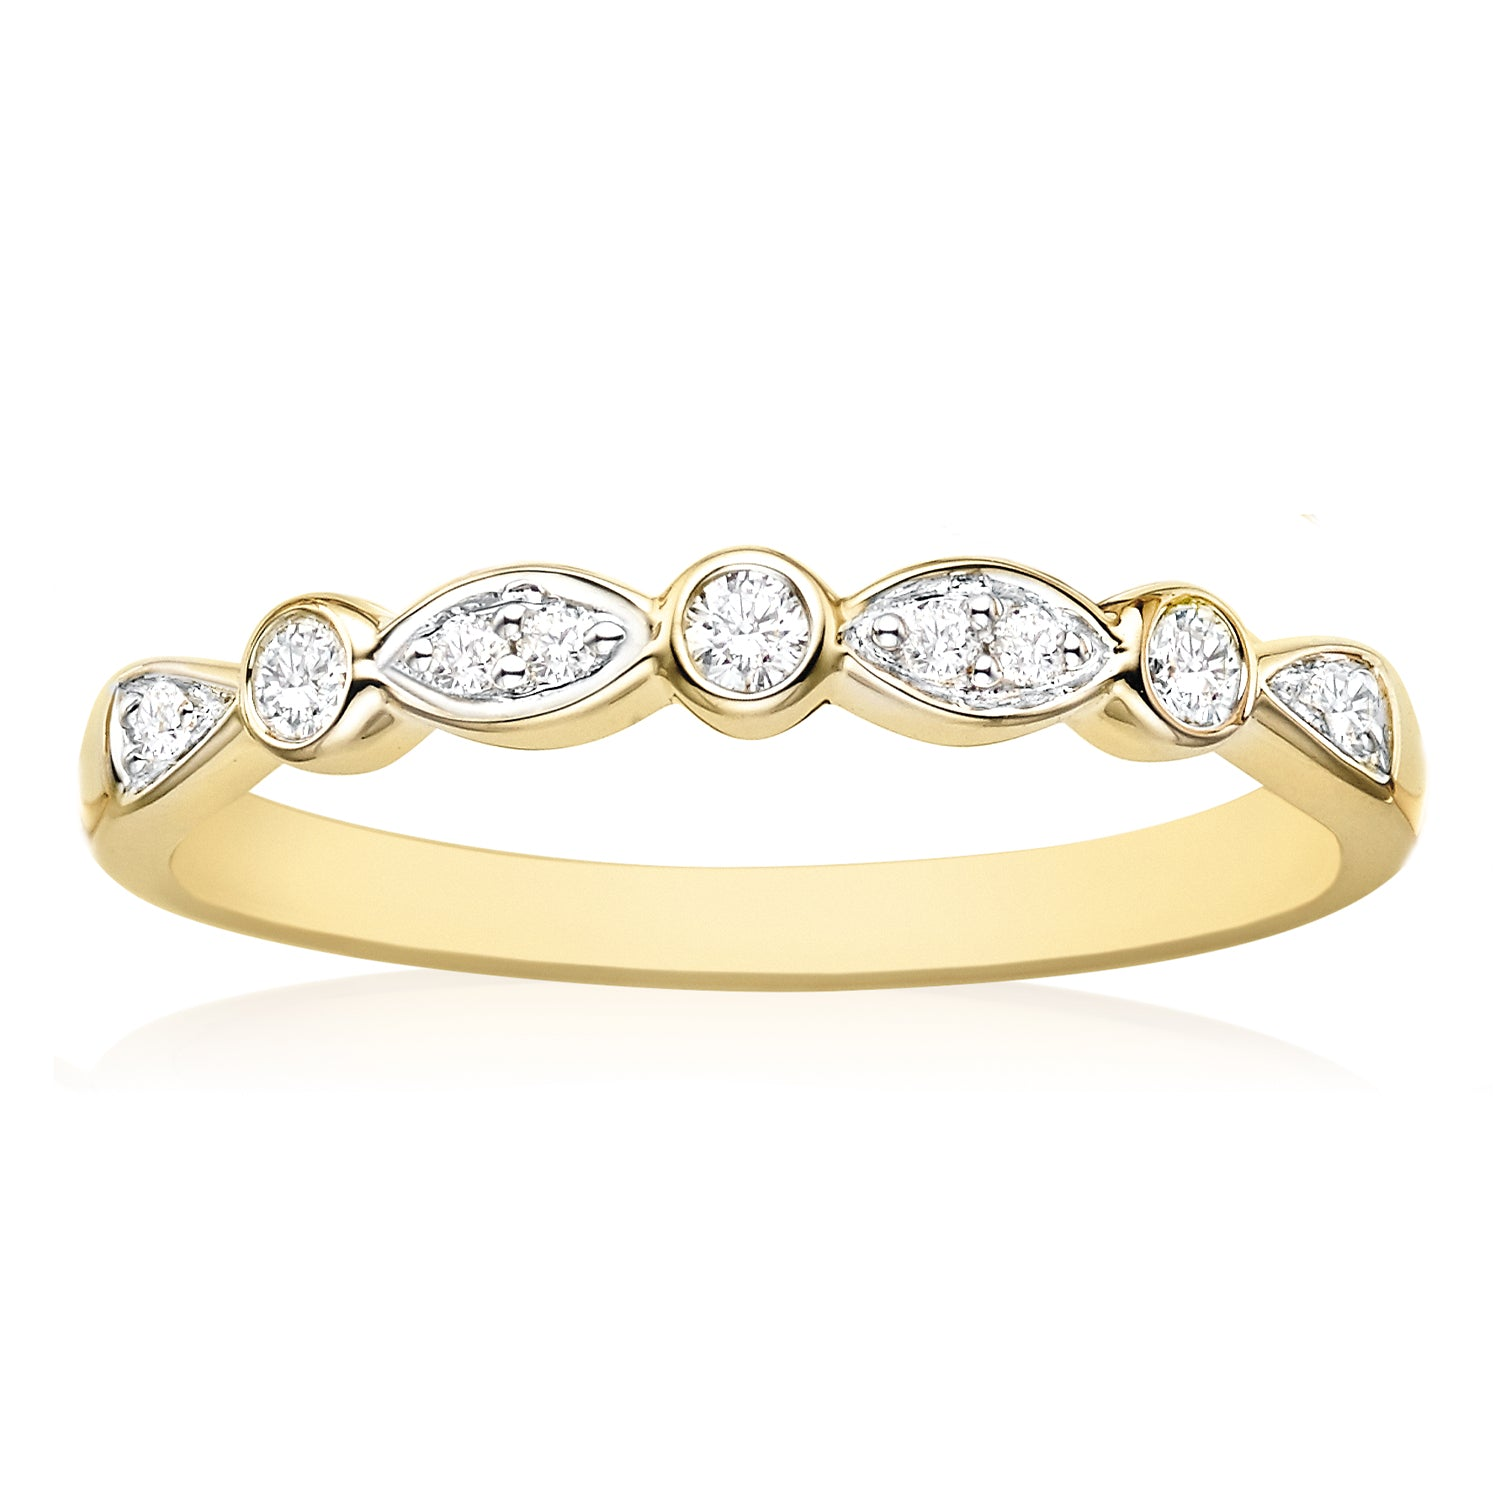 9ct Yellow Gold Round Brilliant Cut with 0.15 CARAT tw of Diamonds